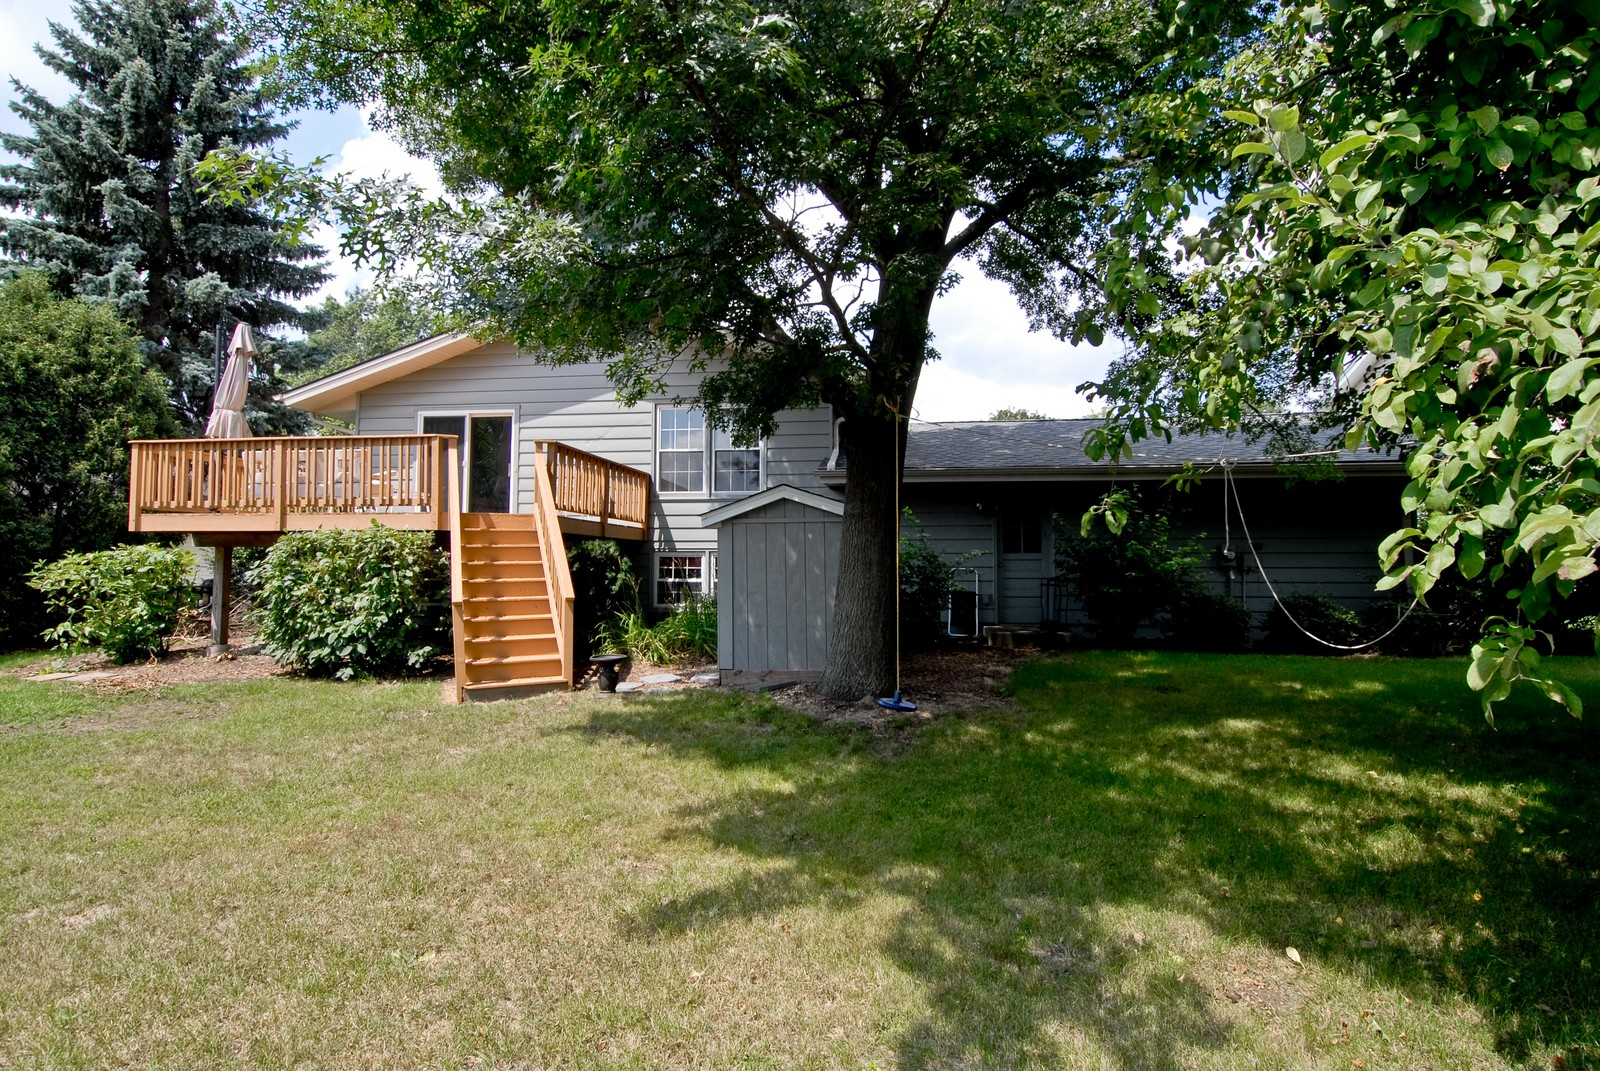 Real Estate Photography - 1112 S 11TH St, St Charles, IL, 60174 - Rear View